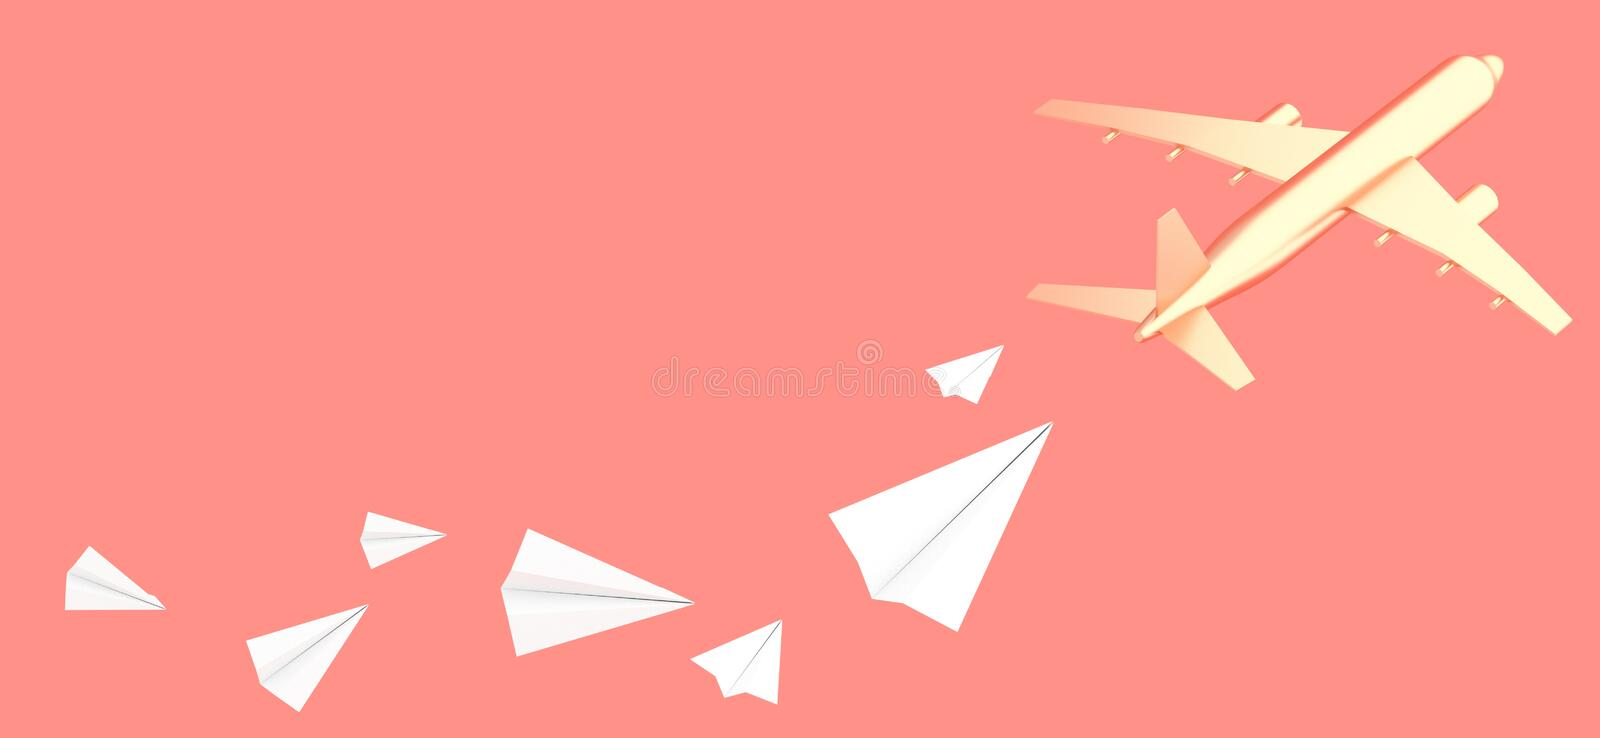 Golden aircraft and group of small white paper planes on coral background 3D illustration royalty free illustration